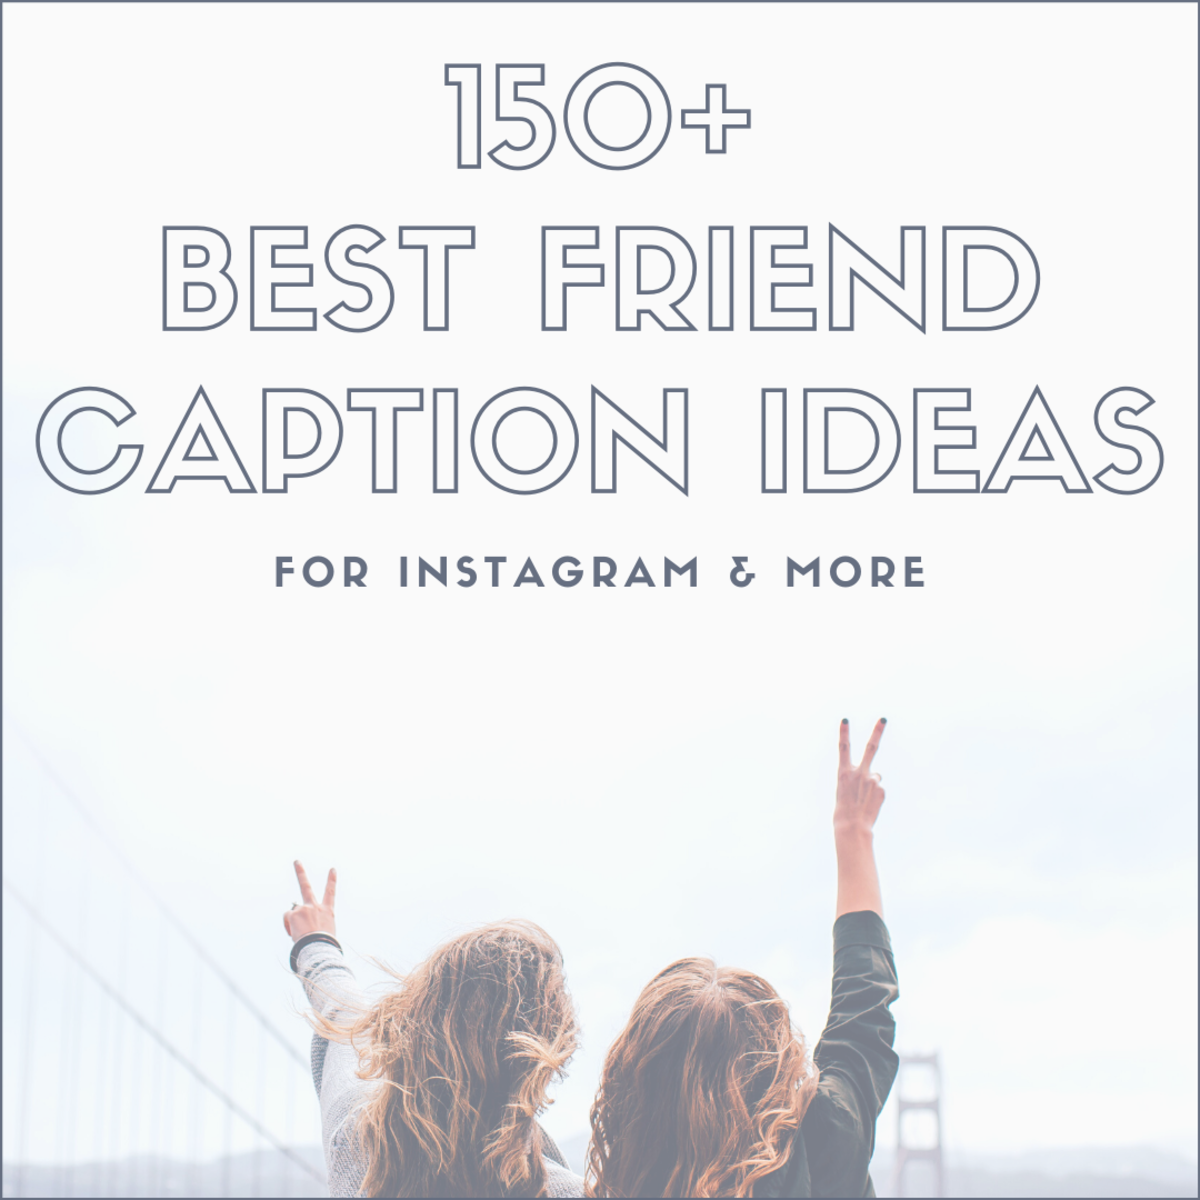 Find just the right captions for selfies with your BFF.